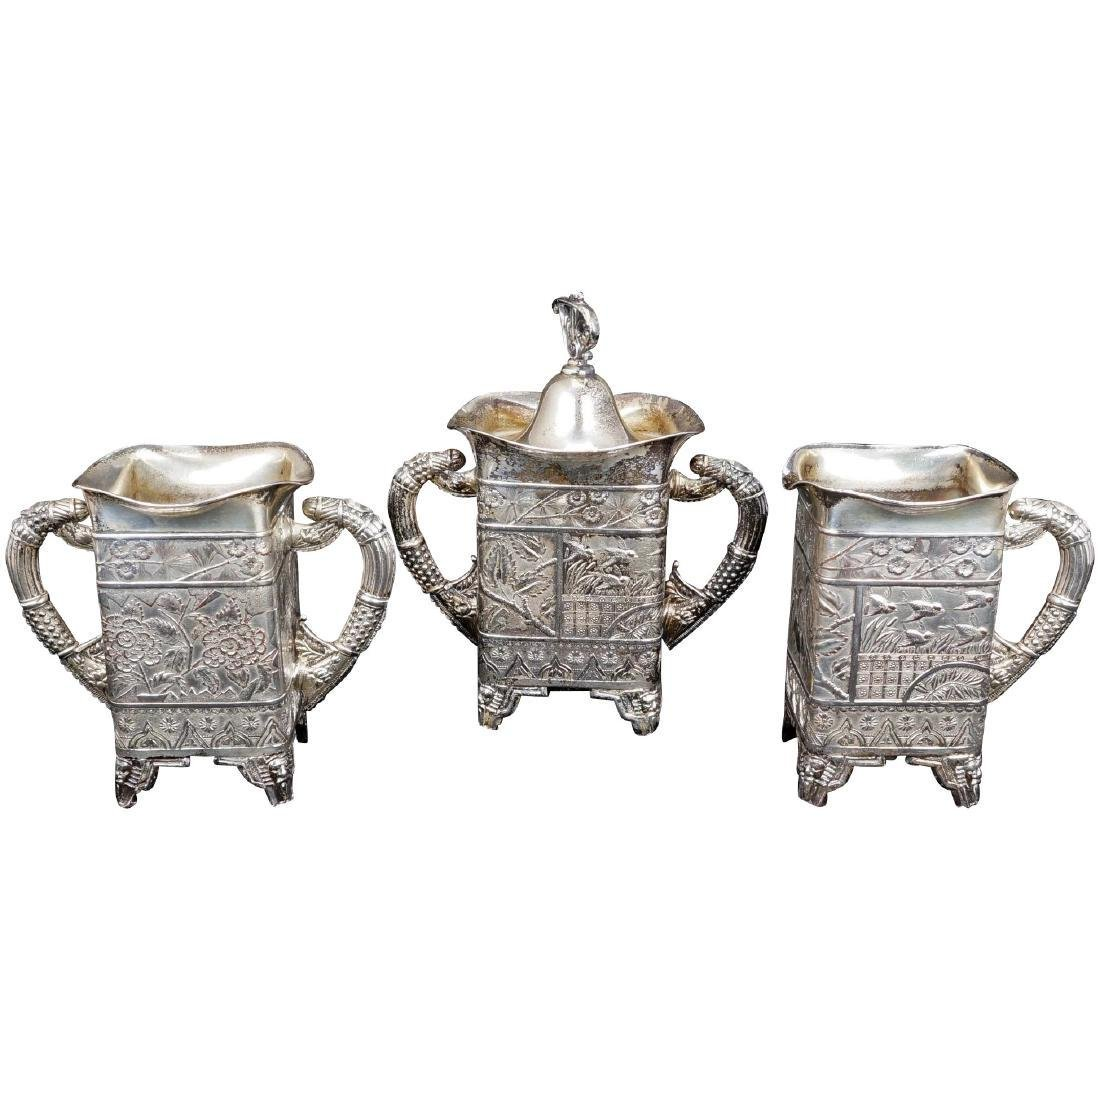 Victorian Aesthetic Movement Silver Plate Tea Set by